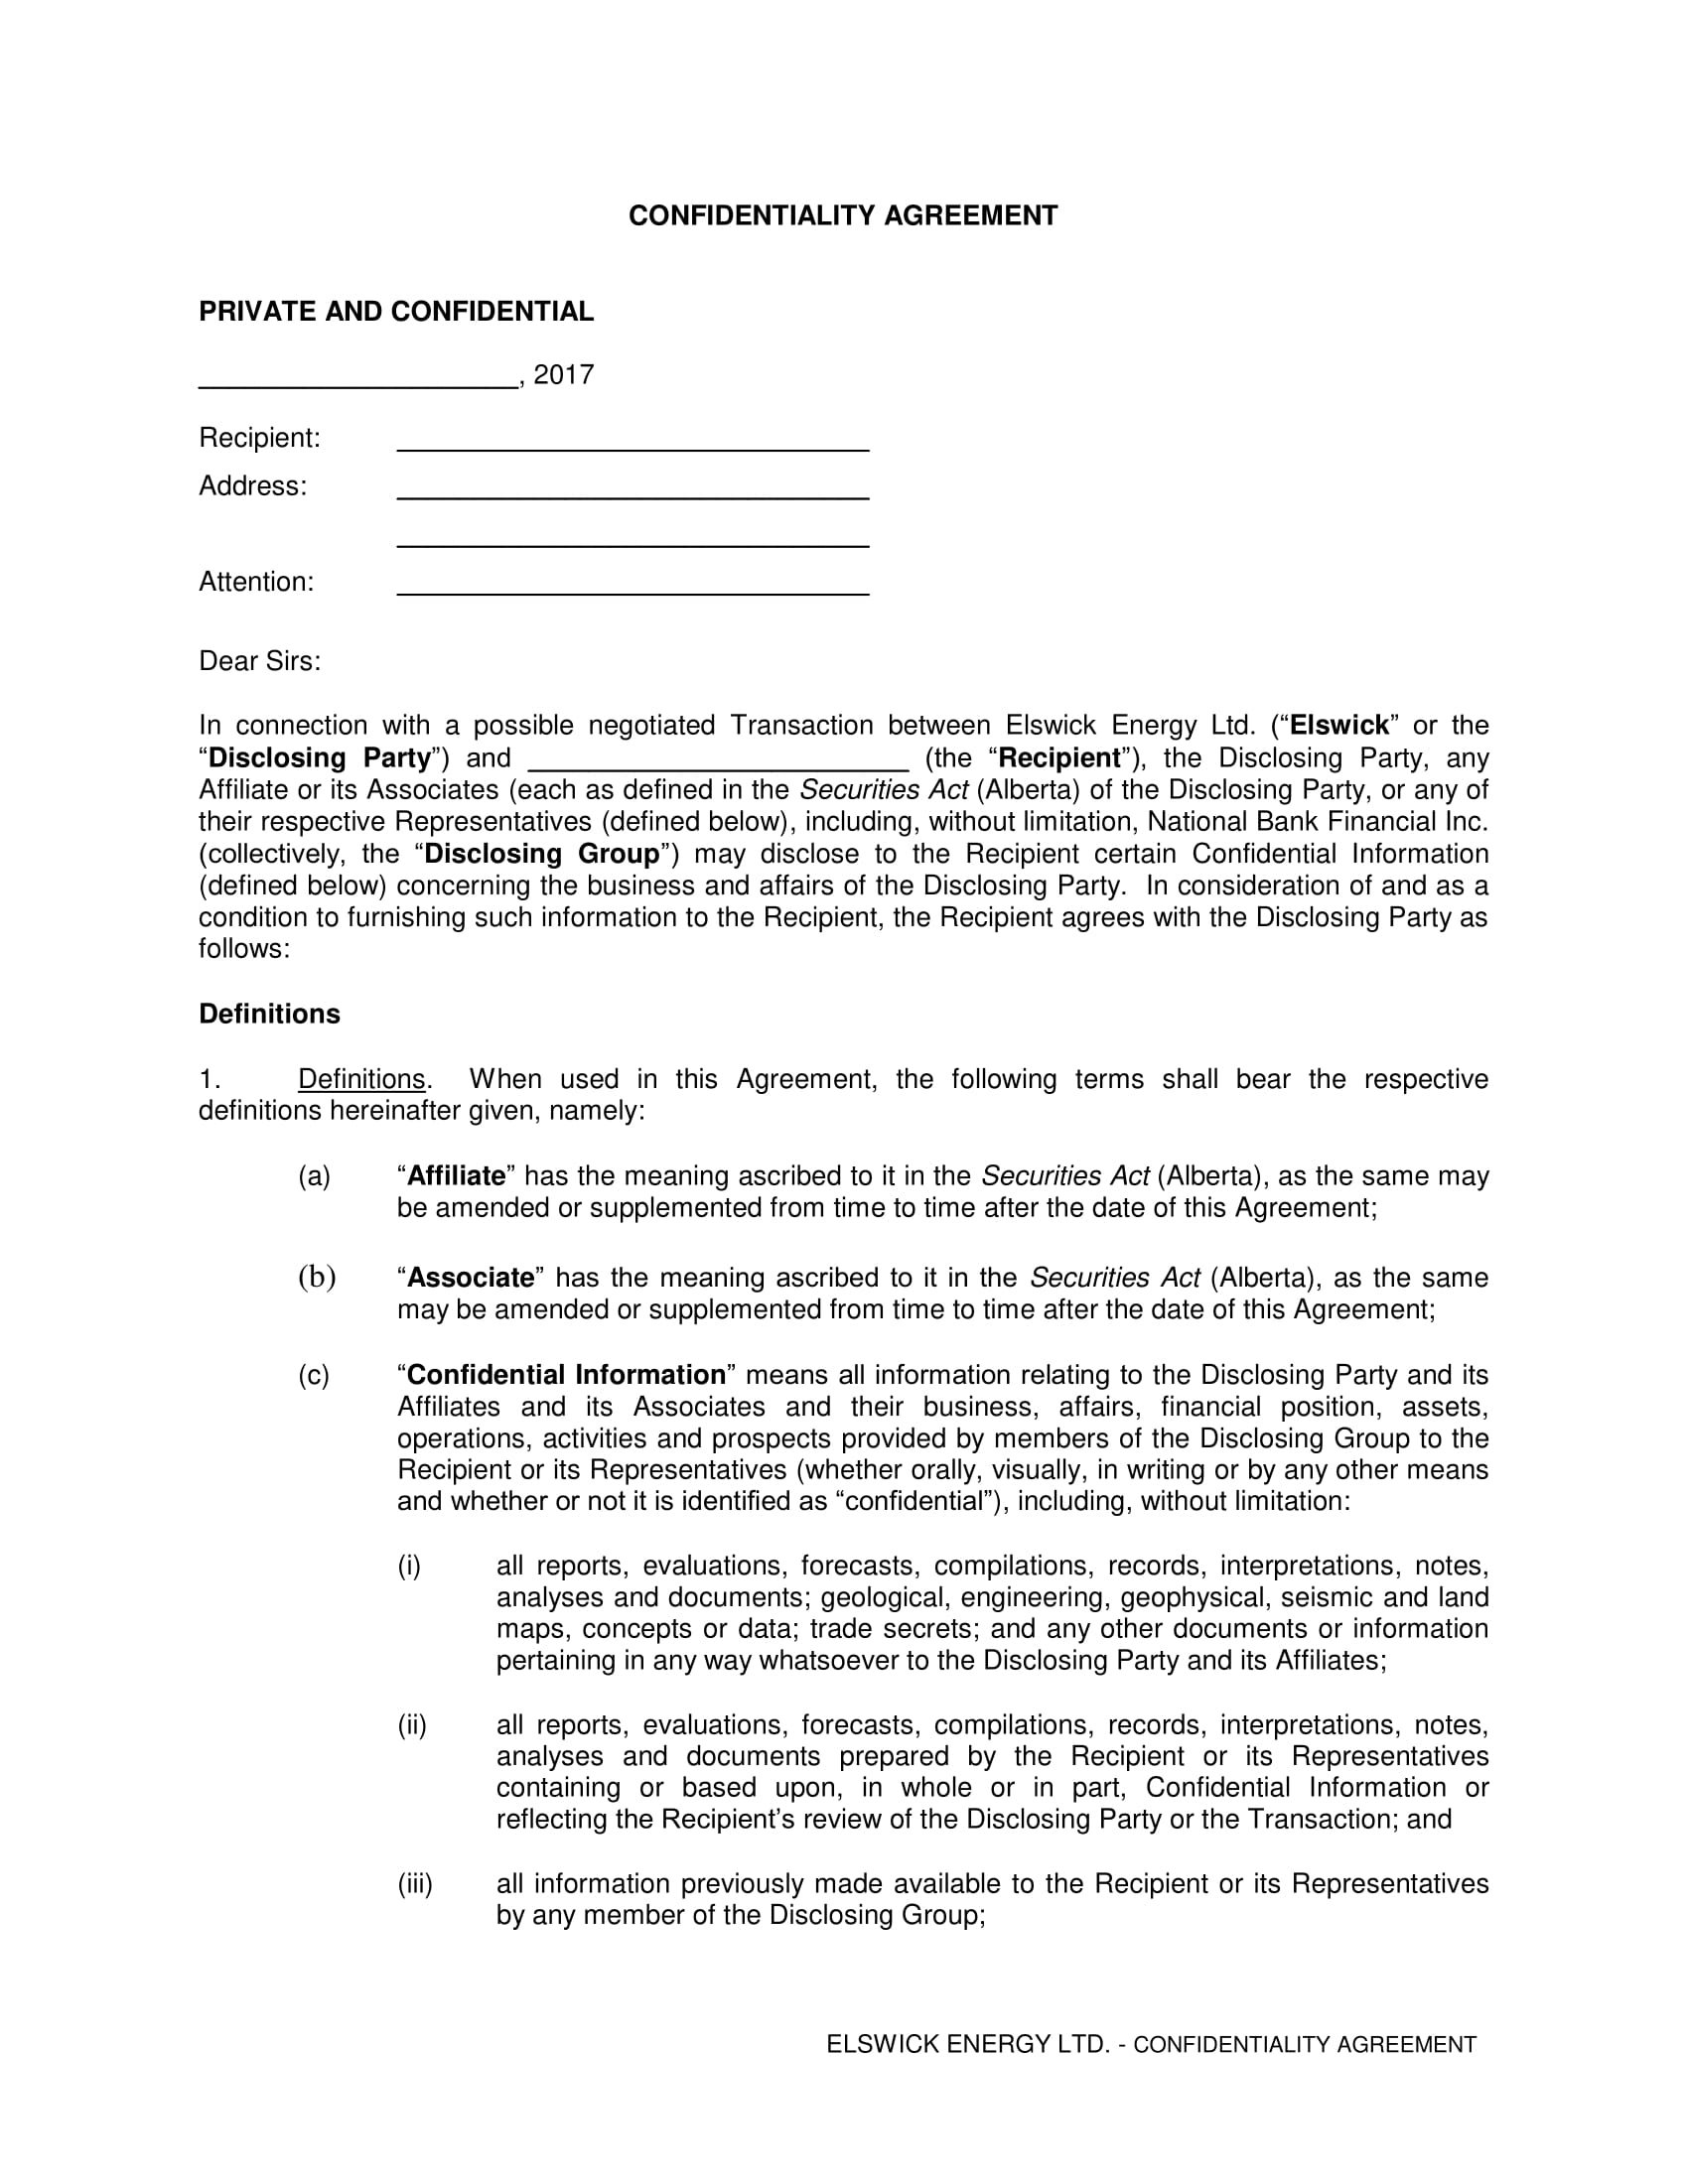 lengthy financial confidentiality agreement example